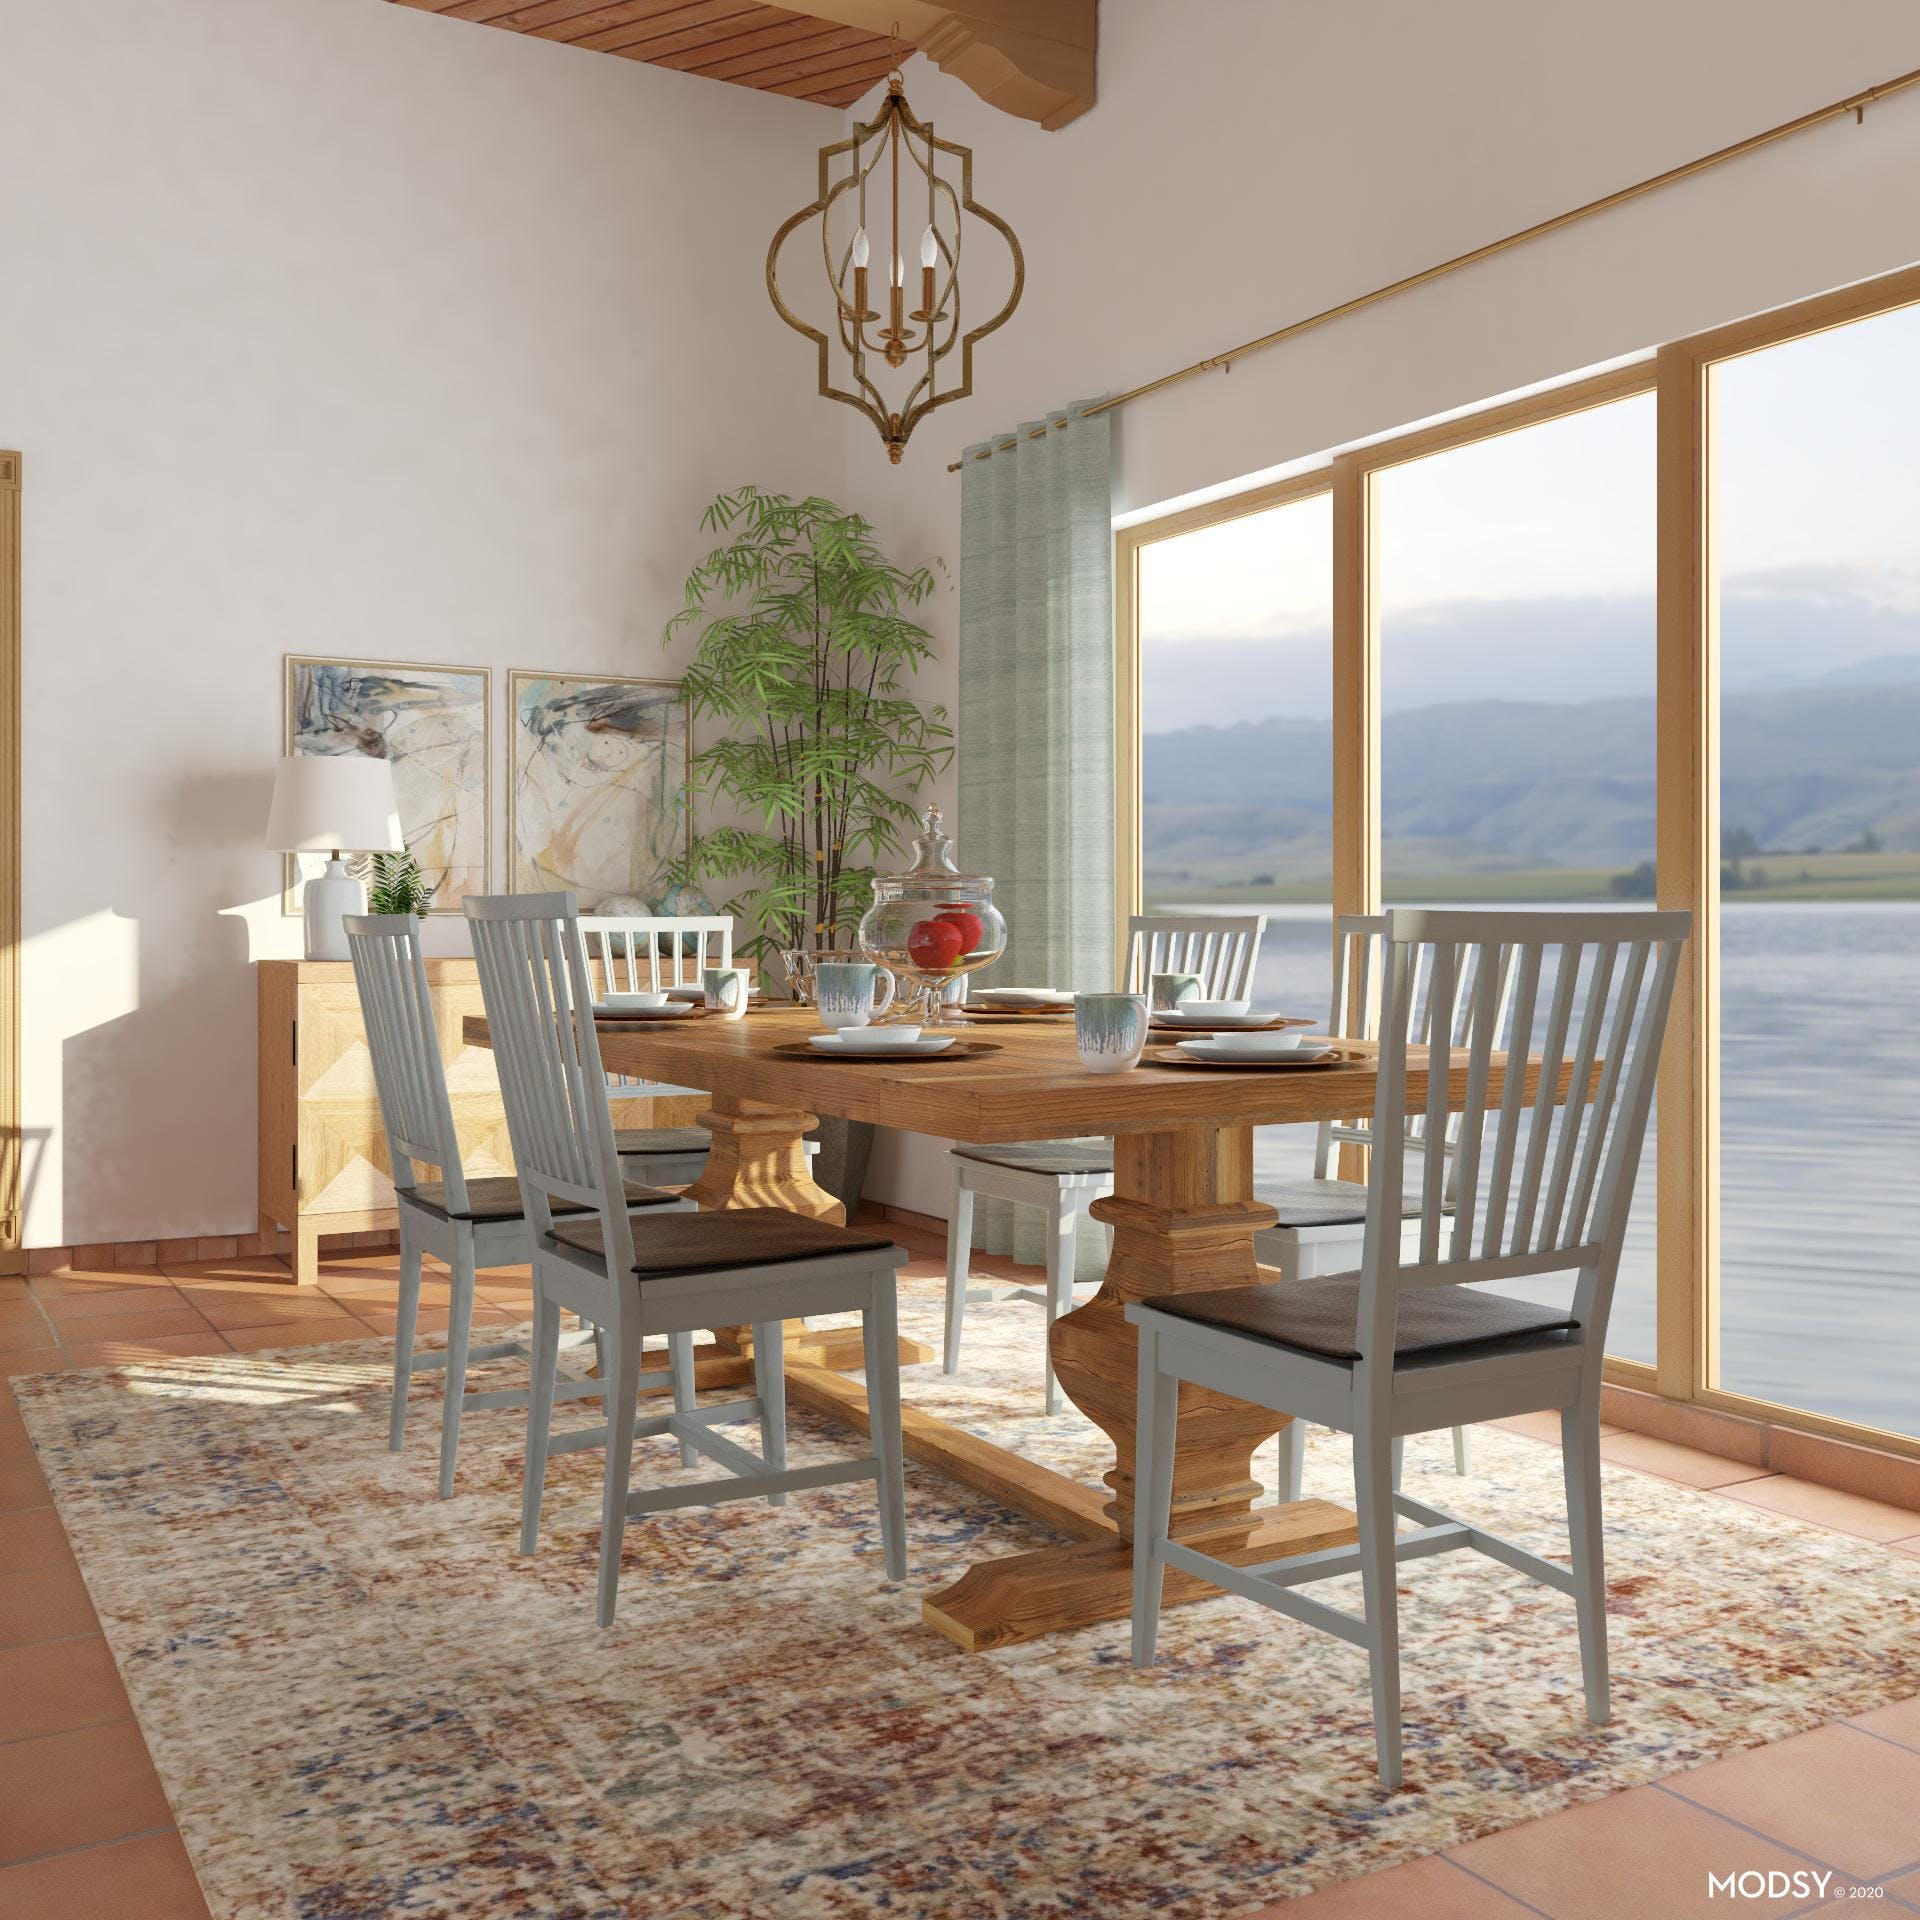 Pastel Themed Dining Room: Pet friendly